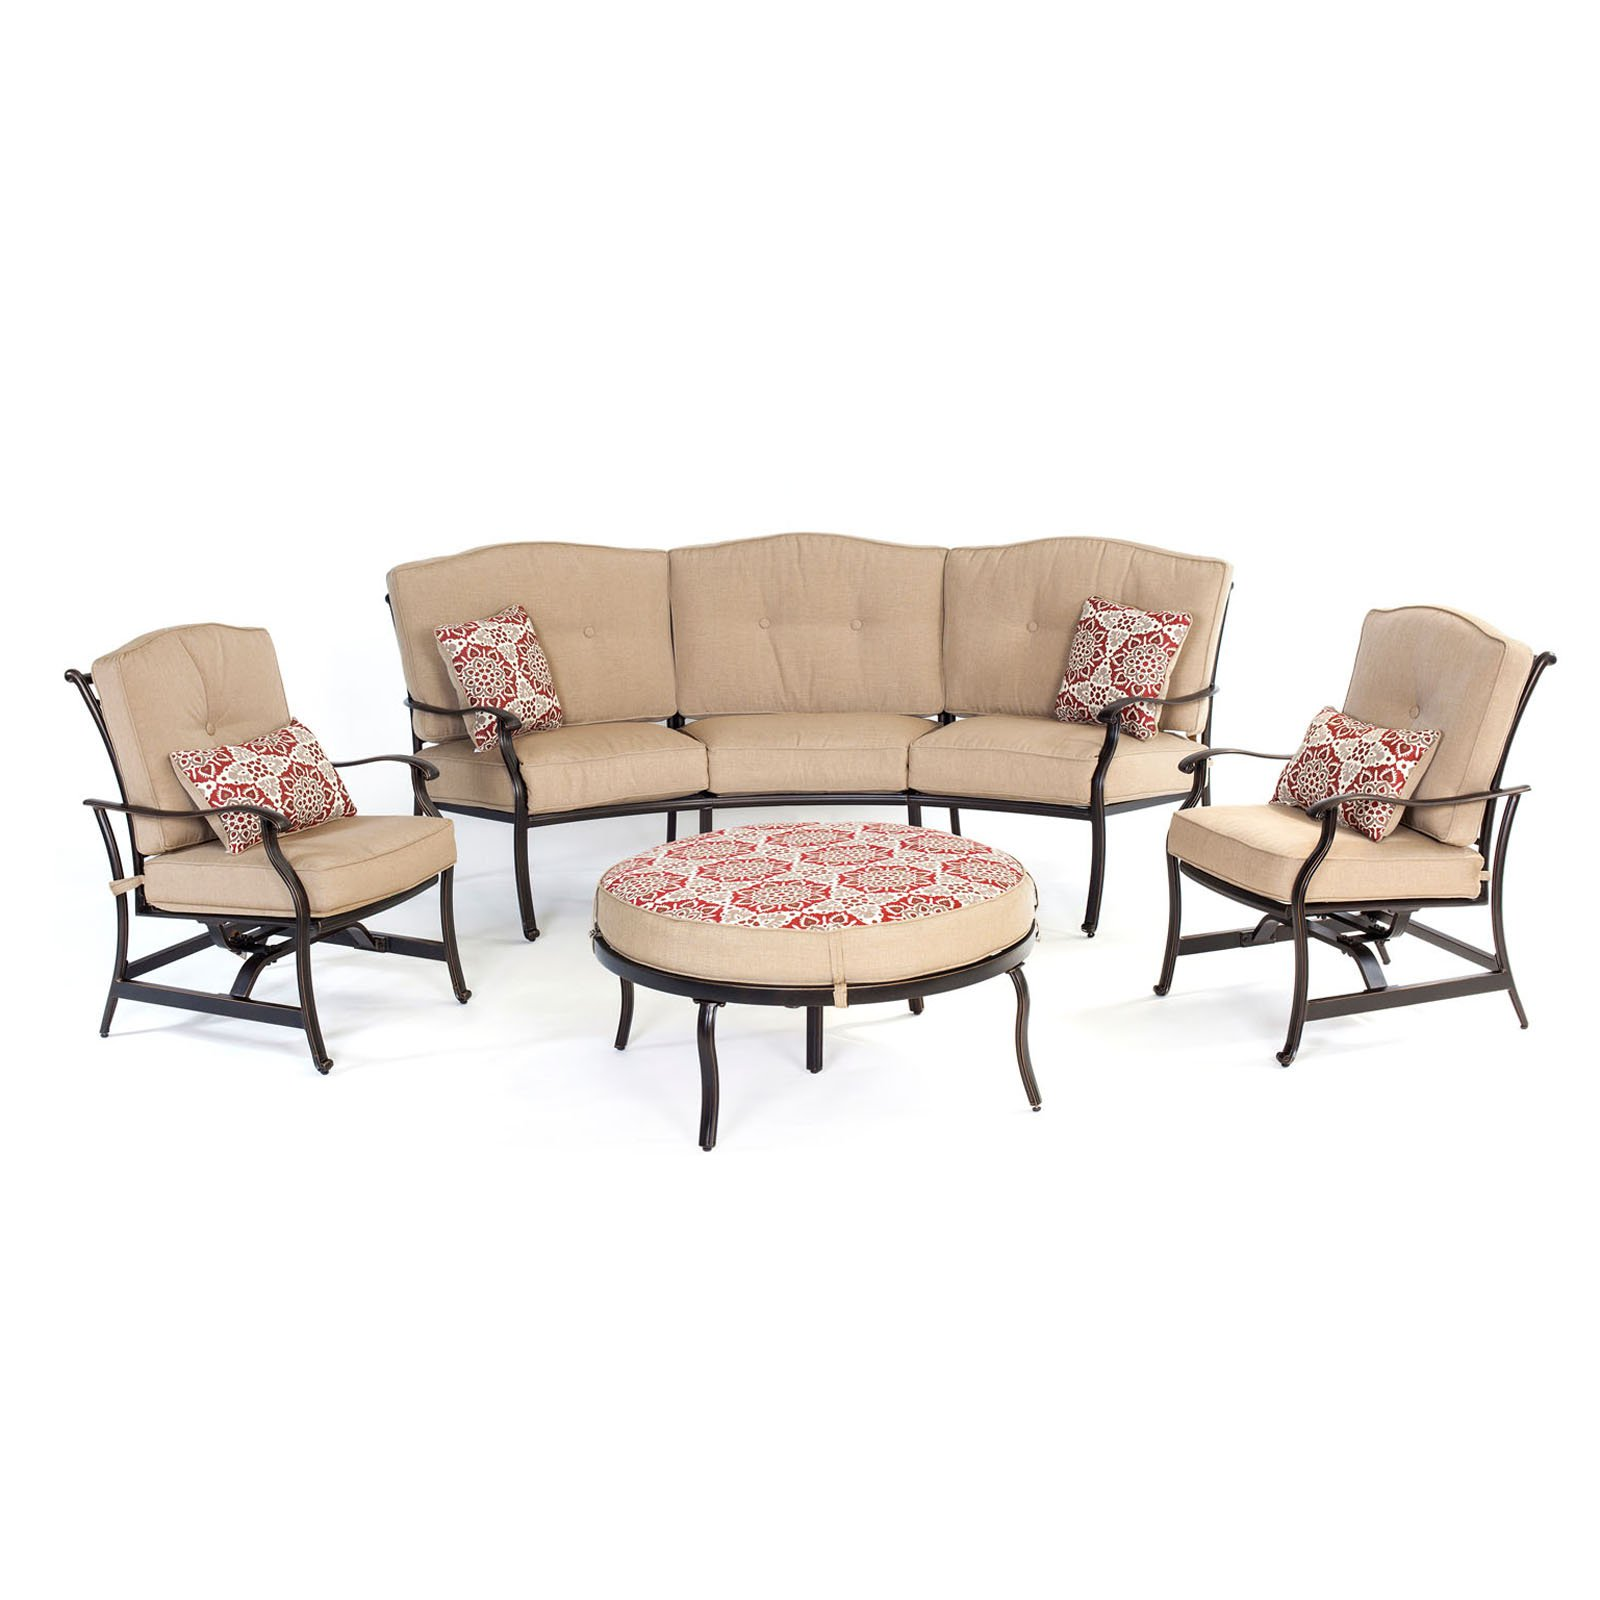 Hanover Outdoor Traditions 4-Piece Patio Set with Reversible Ottoman and Accent Pillows, Natural Oat/Berry